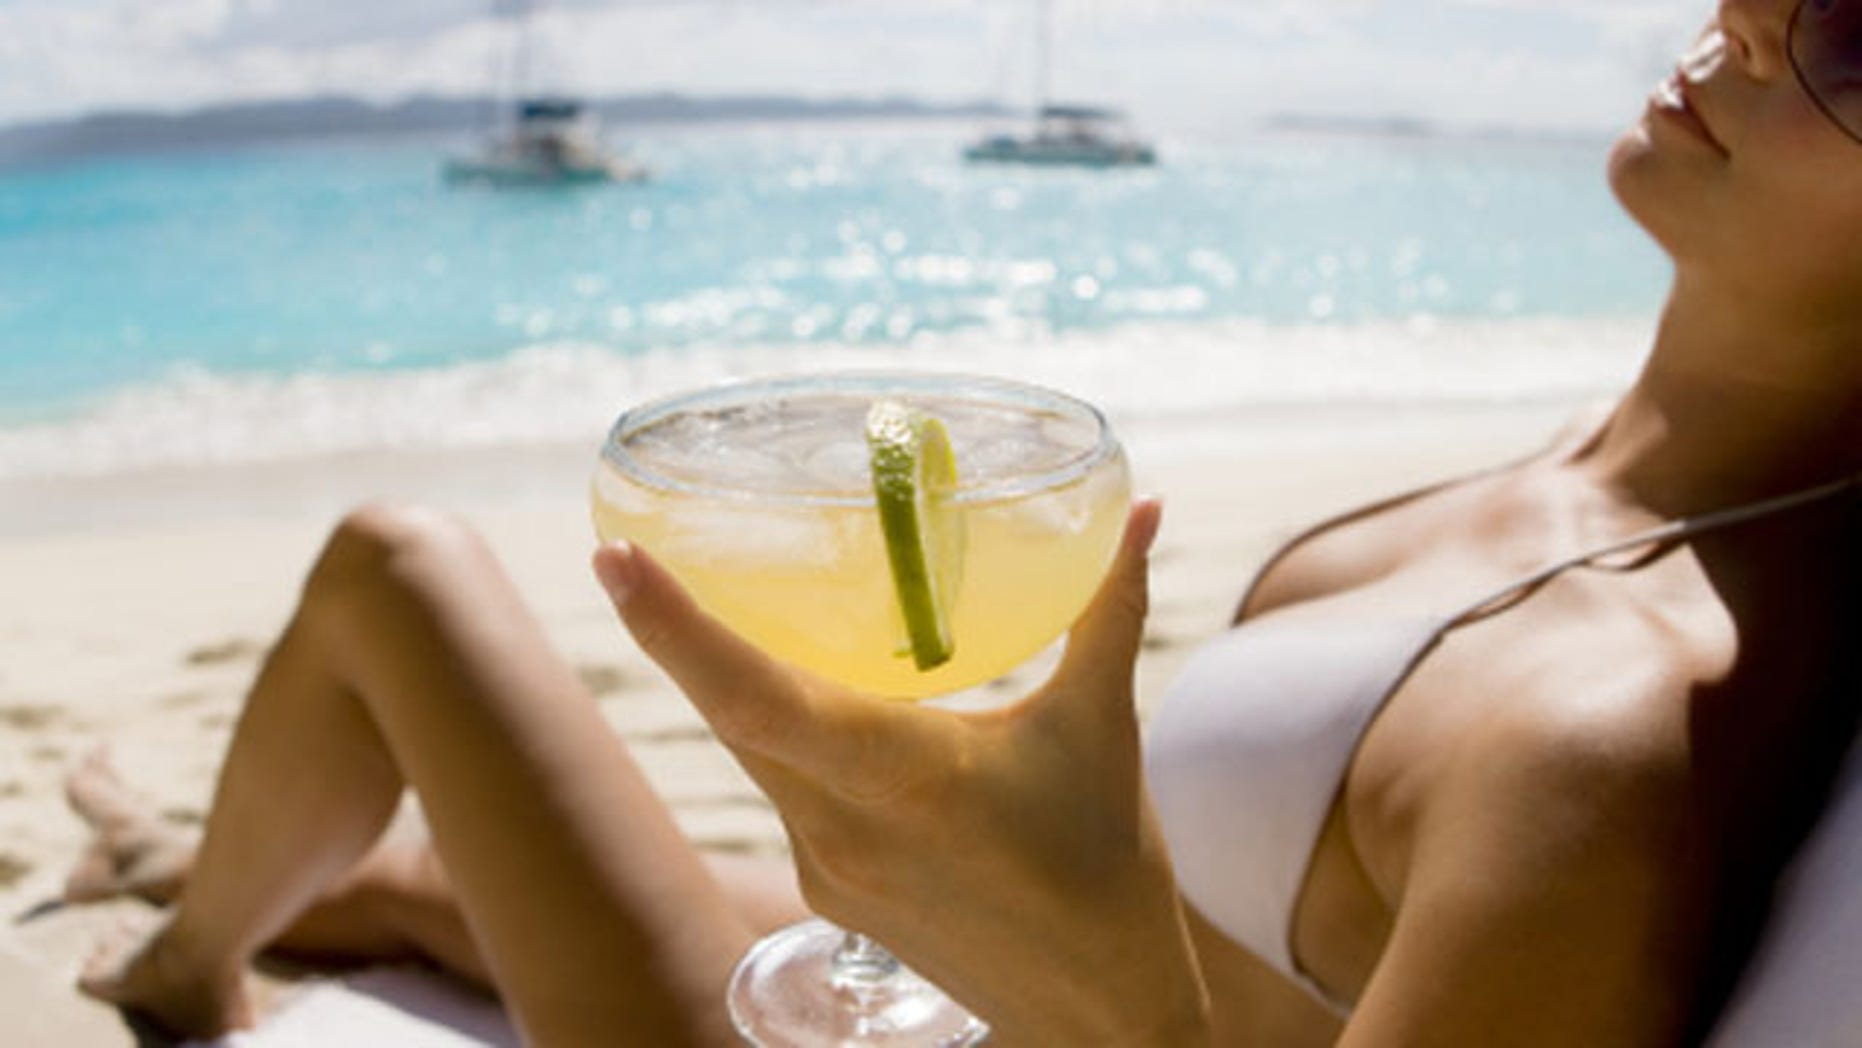 young woman relaxing at the beach in the Caribbean drinking margarita cocktail